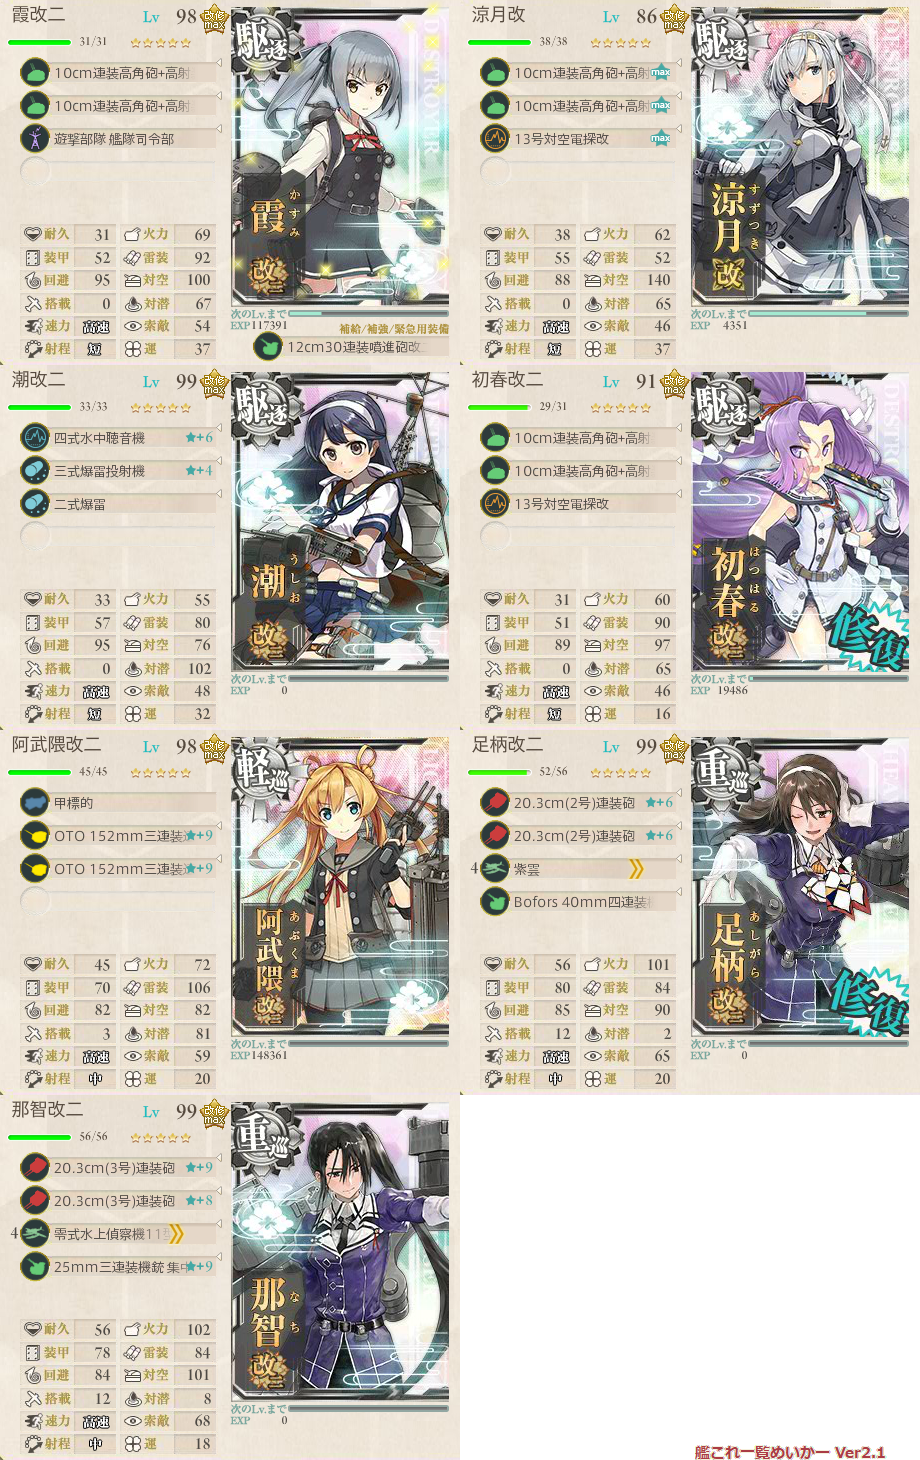 kancolle_20180303-11.png